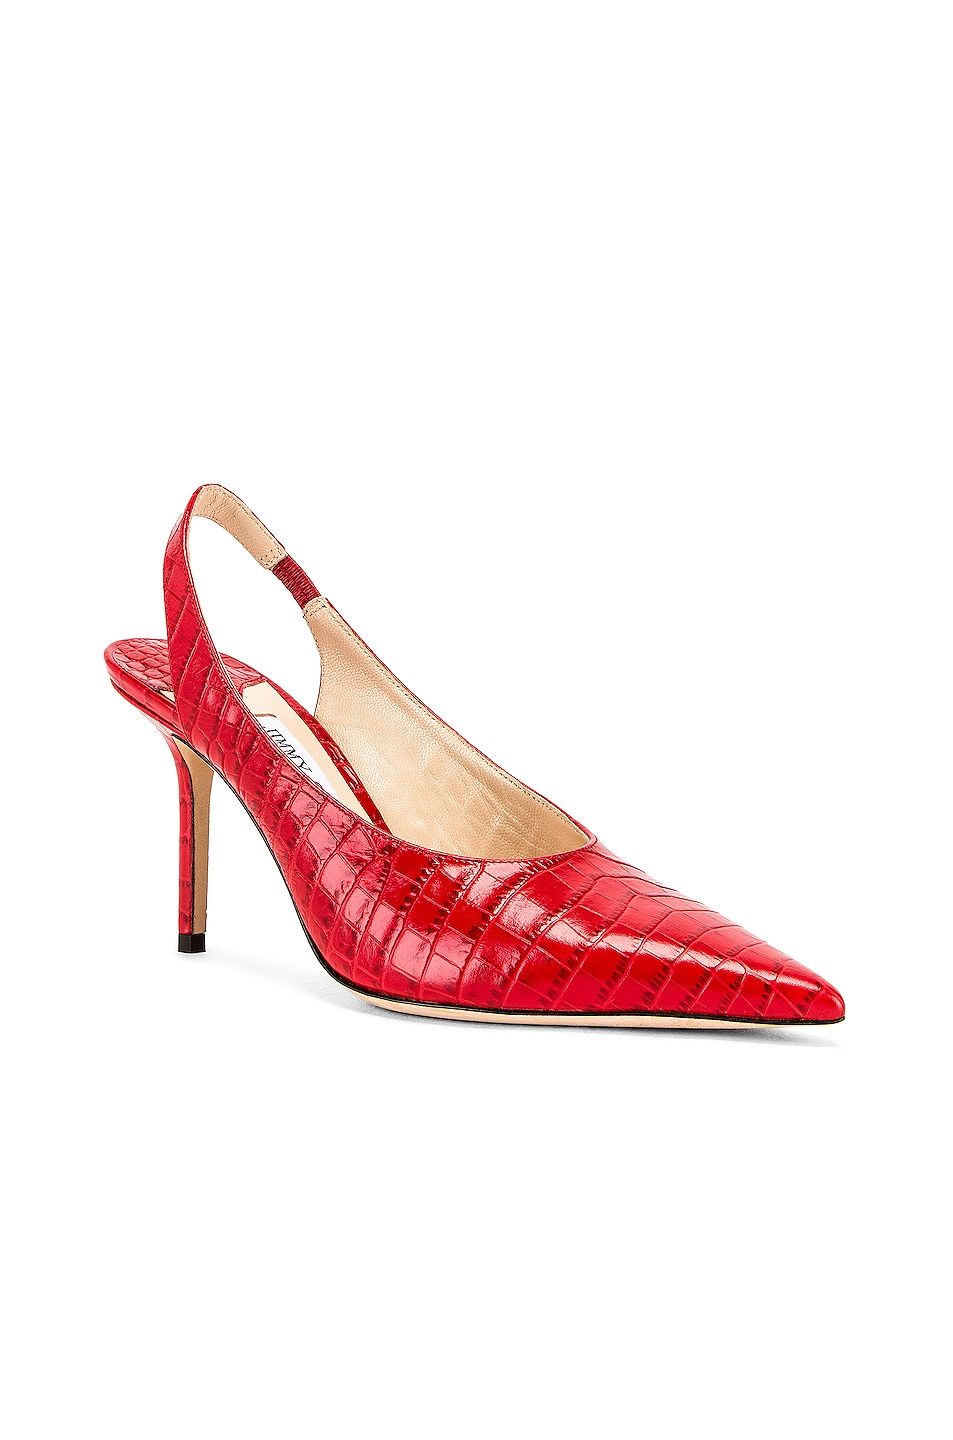 Image 2 of Jimmy Choo Ivy 85 Croc Embossed Leather Slingback in Red